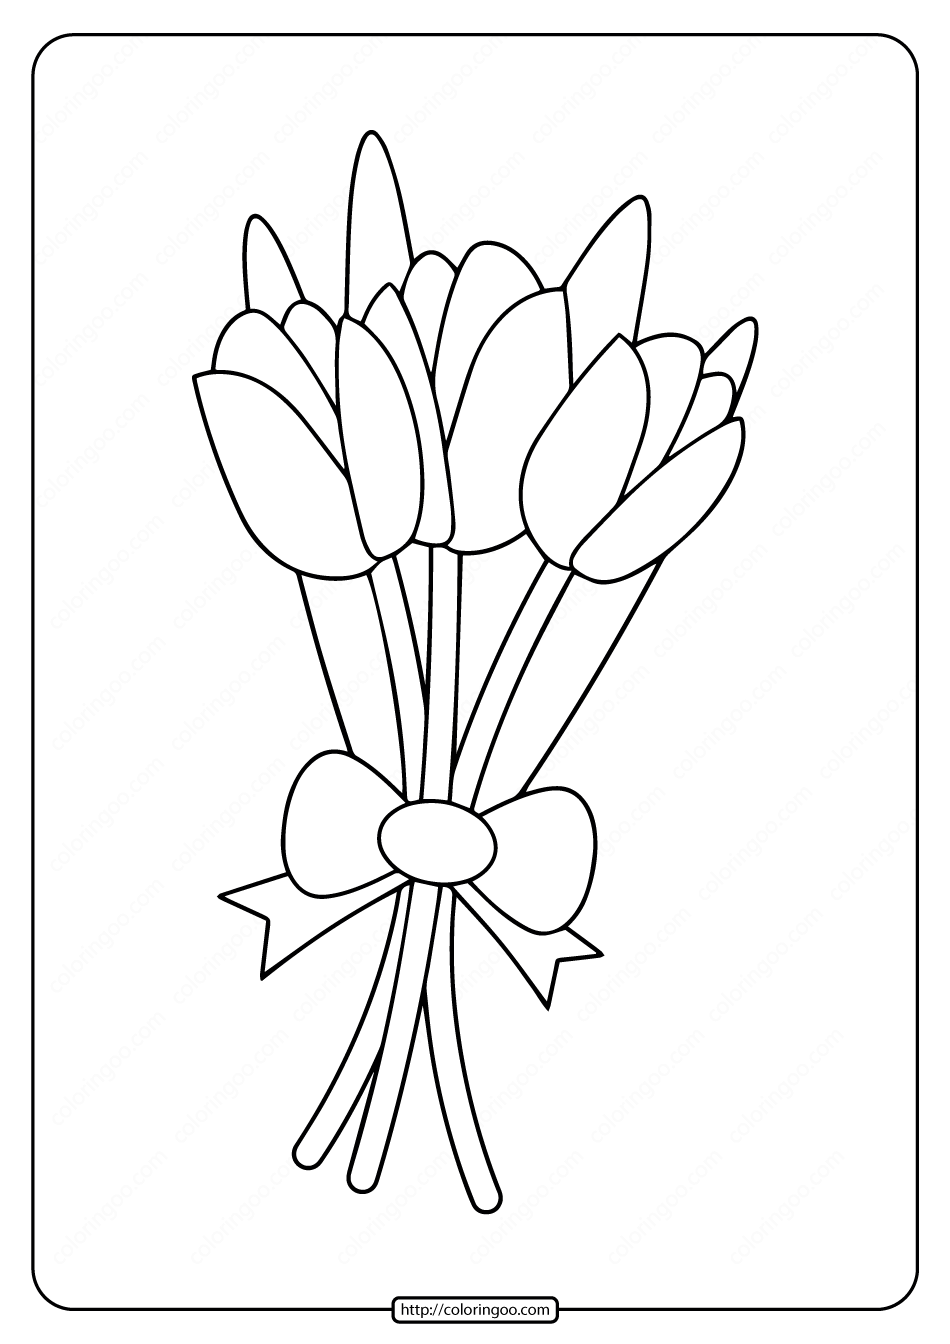 Free Printable a Bunch of Tulips Coloring Page